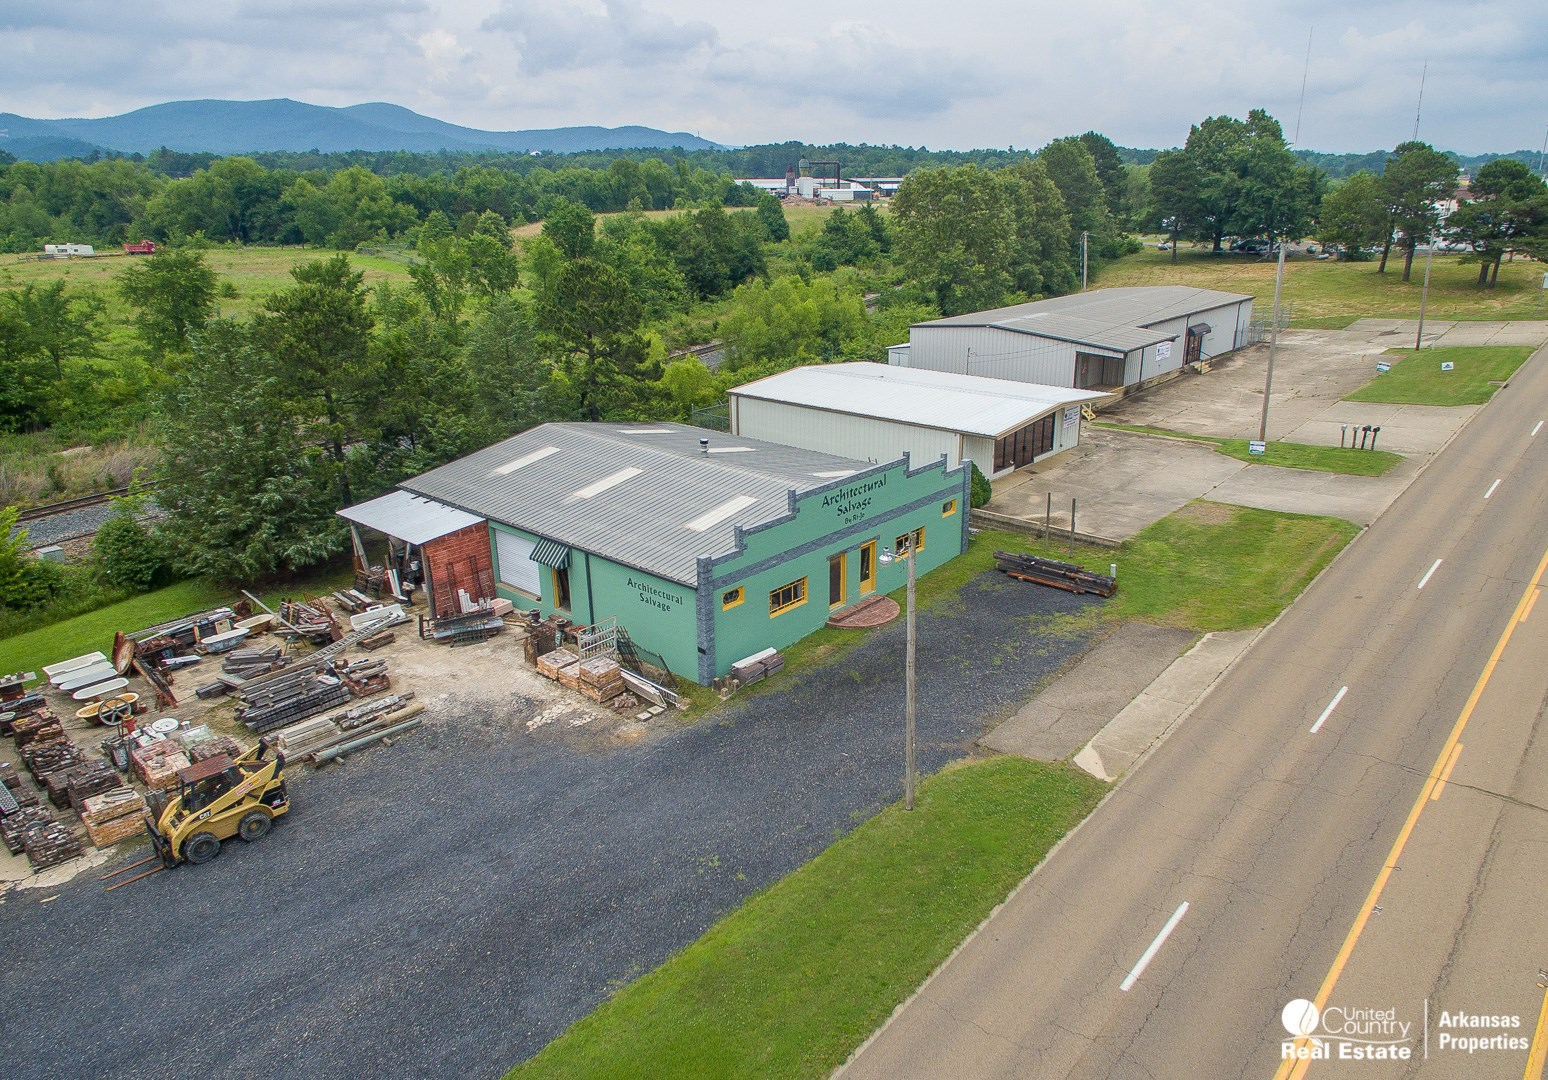 Commercial Warehouse for Sale on US HighwaySteel trussed But